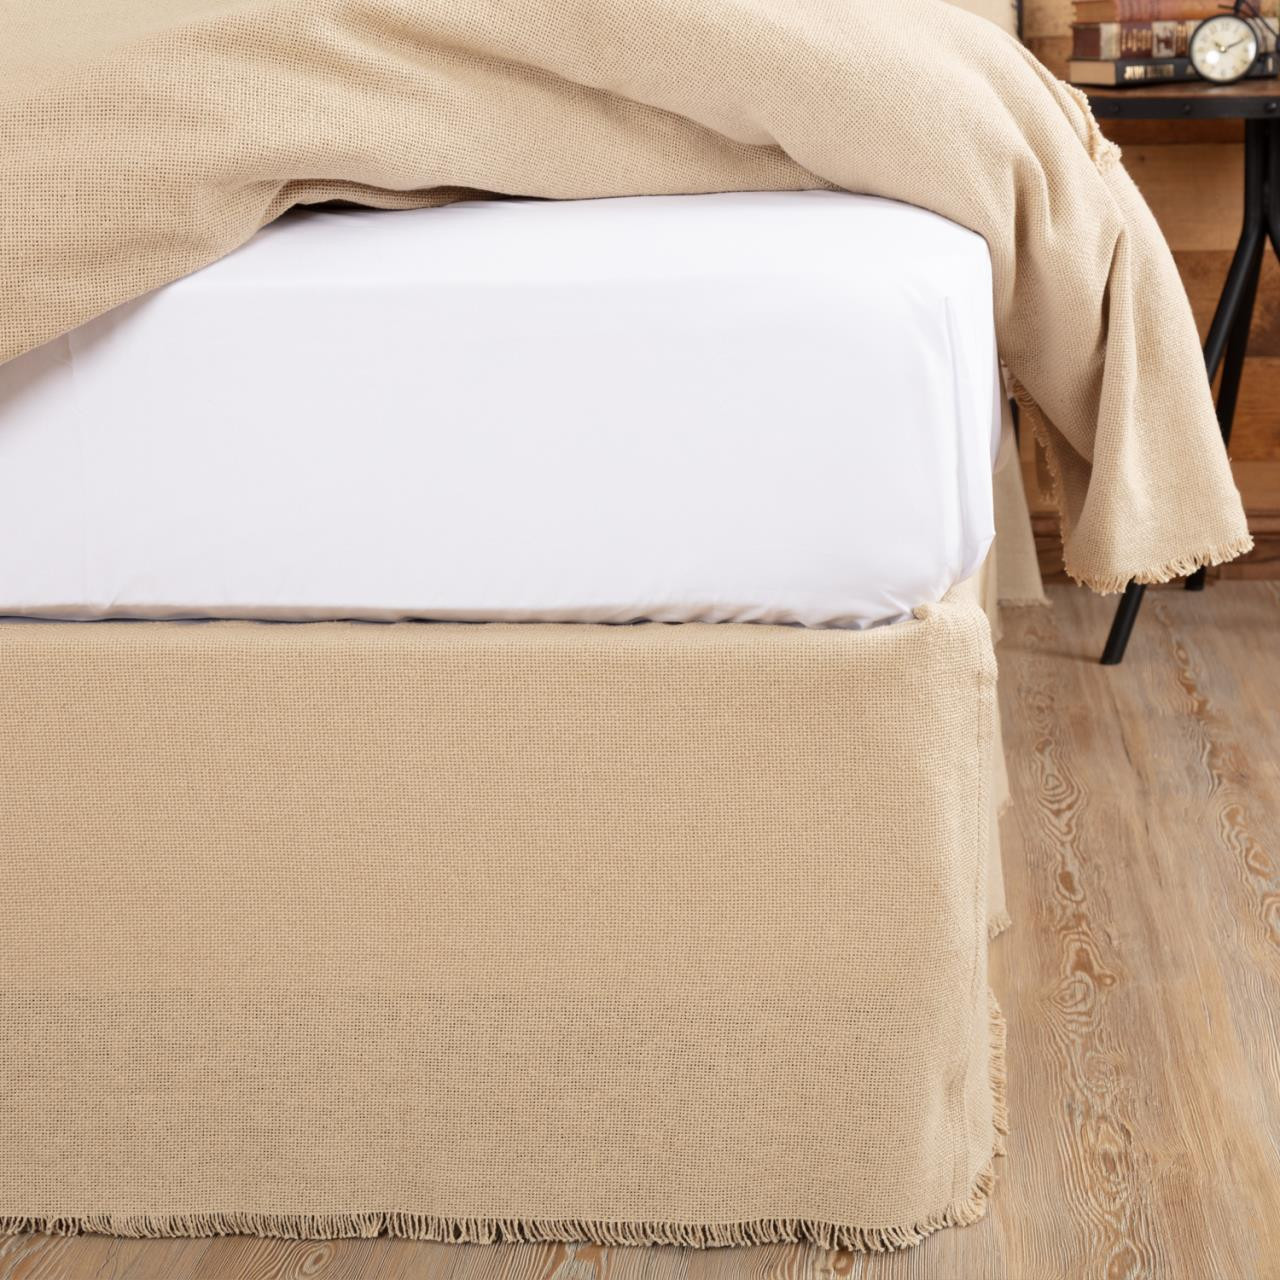 Burlap Vintage Fringed Bed Skirt By Vhc Brands Paul S Home Fashions